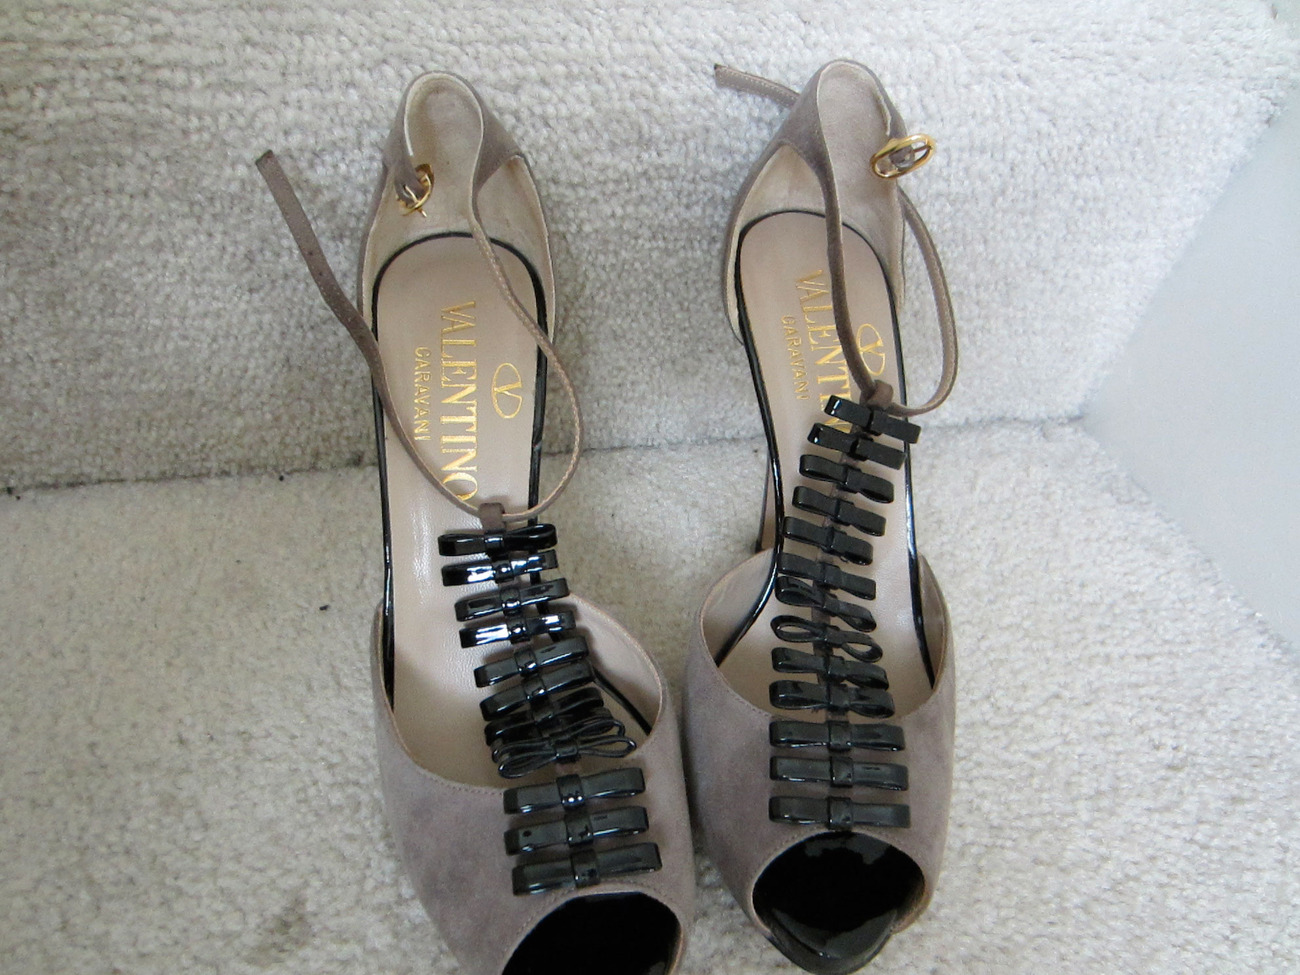 5404c59468ba3 Valentino Garavani Suede & Patent Pump Size and 15 similar items